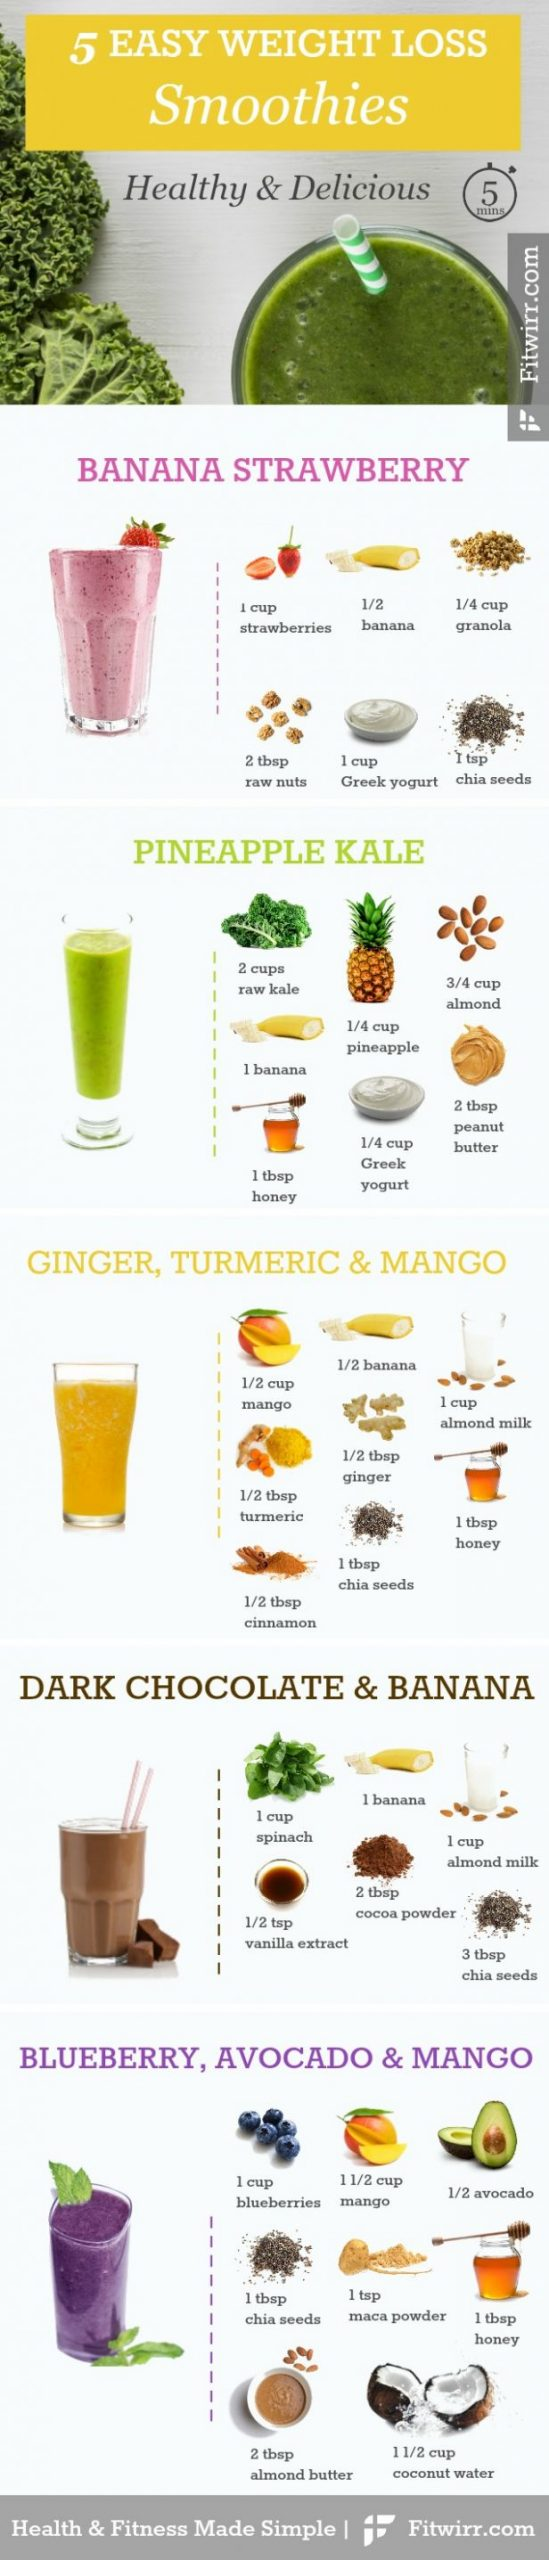 12 Best Smoothie Recipes for Weight Loss - Fitwirr - Detox Recipes Weight Loss Homemade